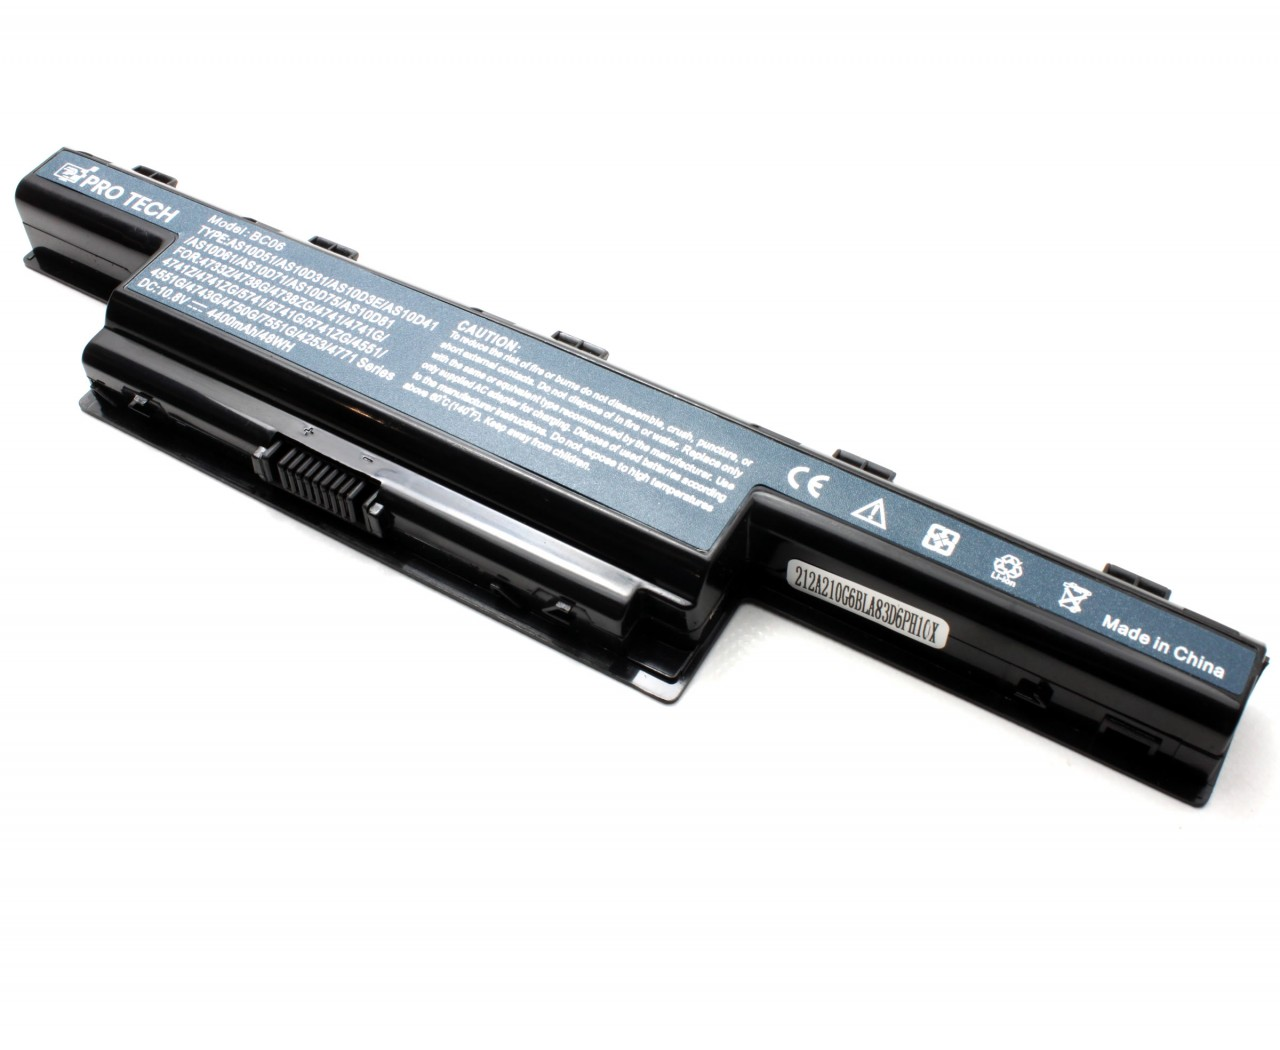 Baterie Packard Bell EasyNote NS44 6 celule imagine powerlaptop.ro 2021